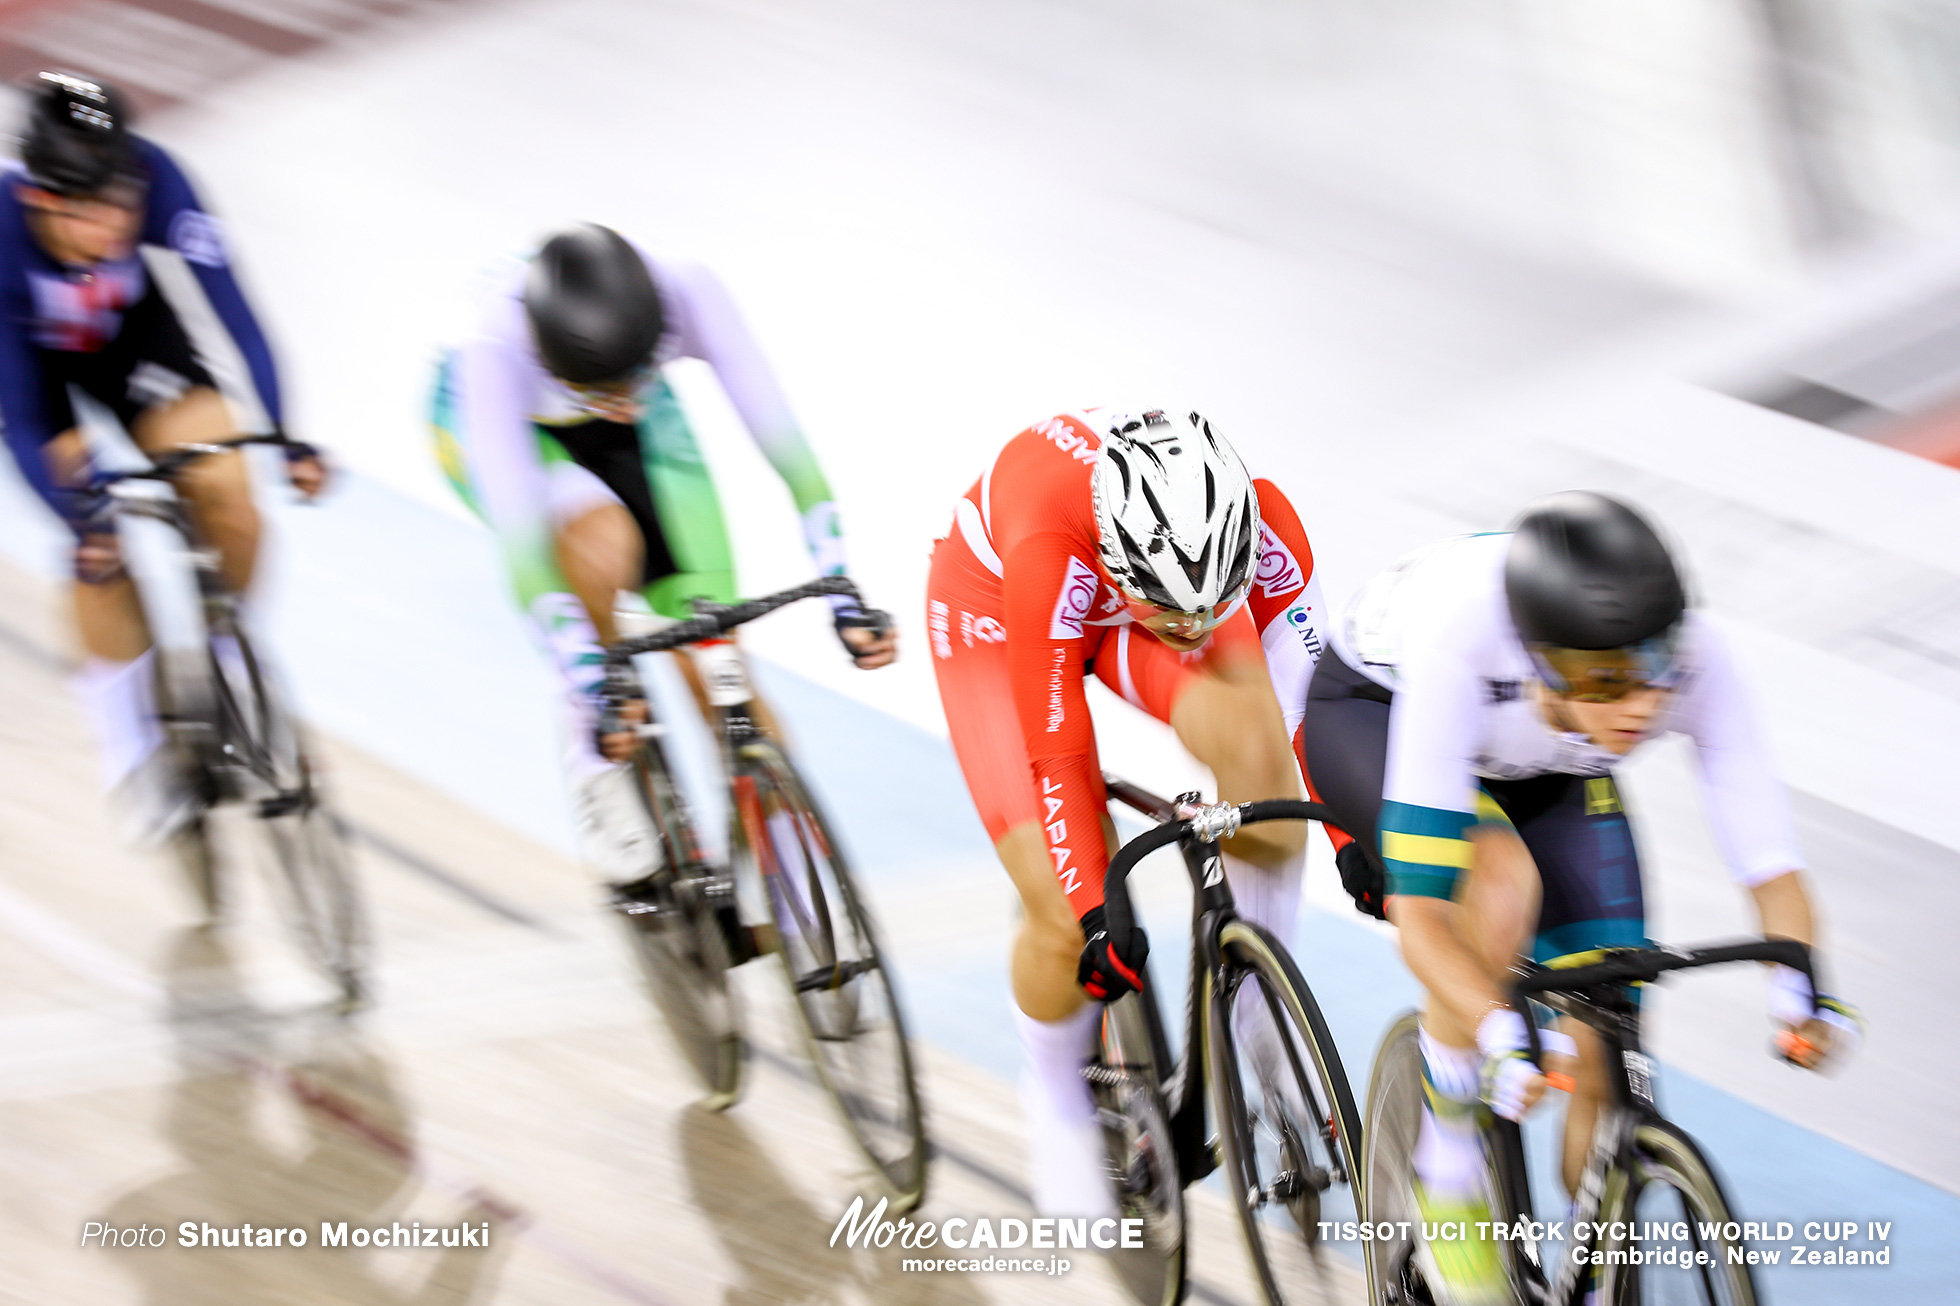 Women's Scratch Race / TISSOT UCI TRACK CYCLING WORLD CUP IV, Cambridge, New Zealand